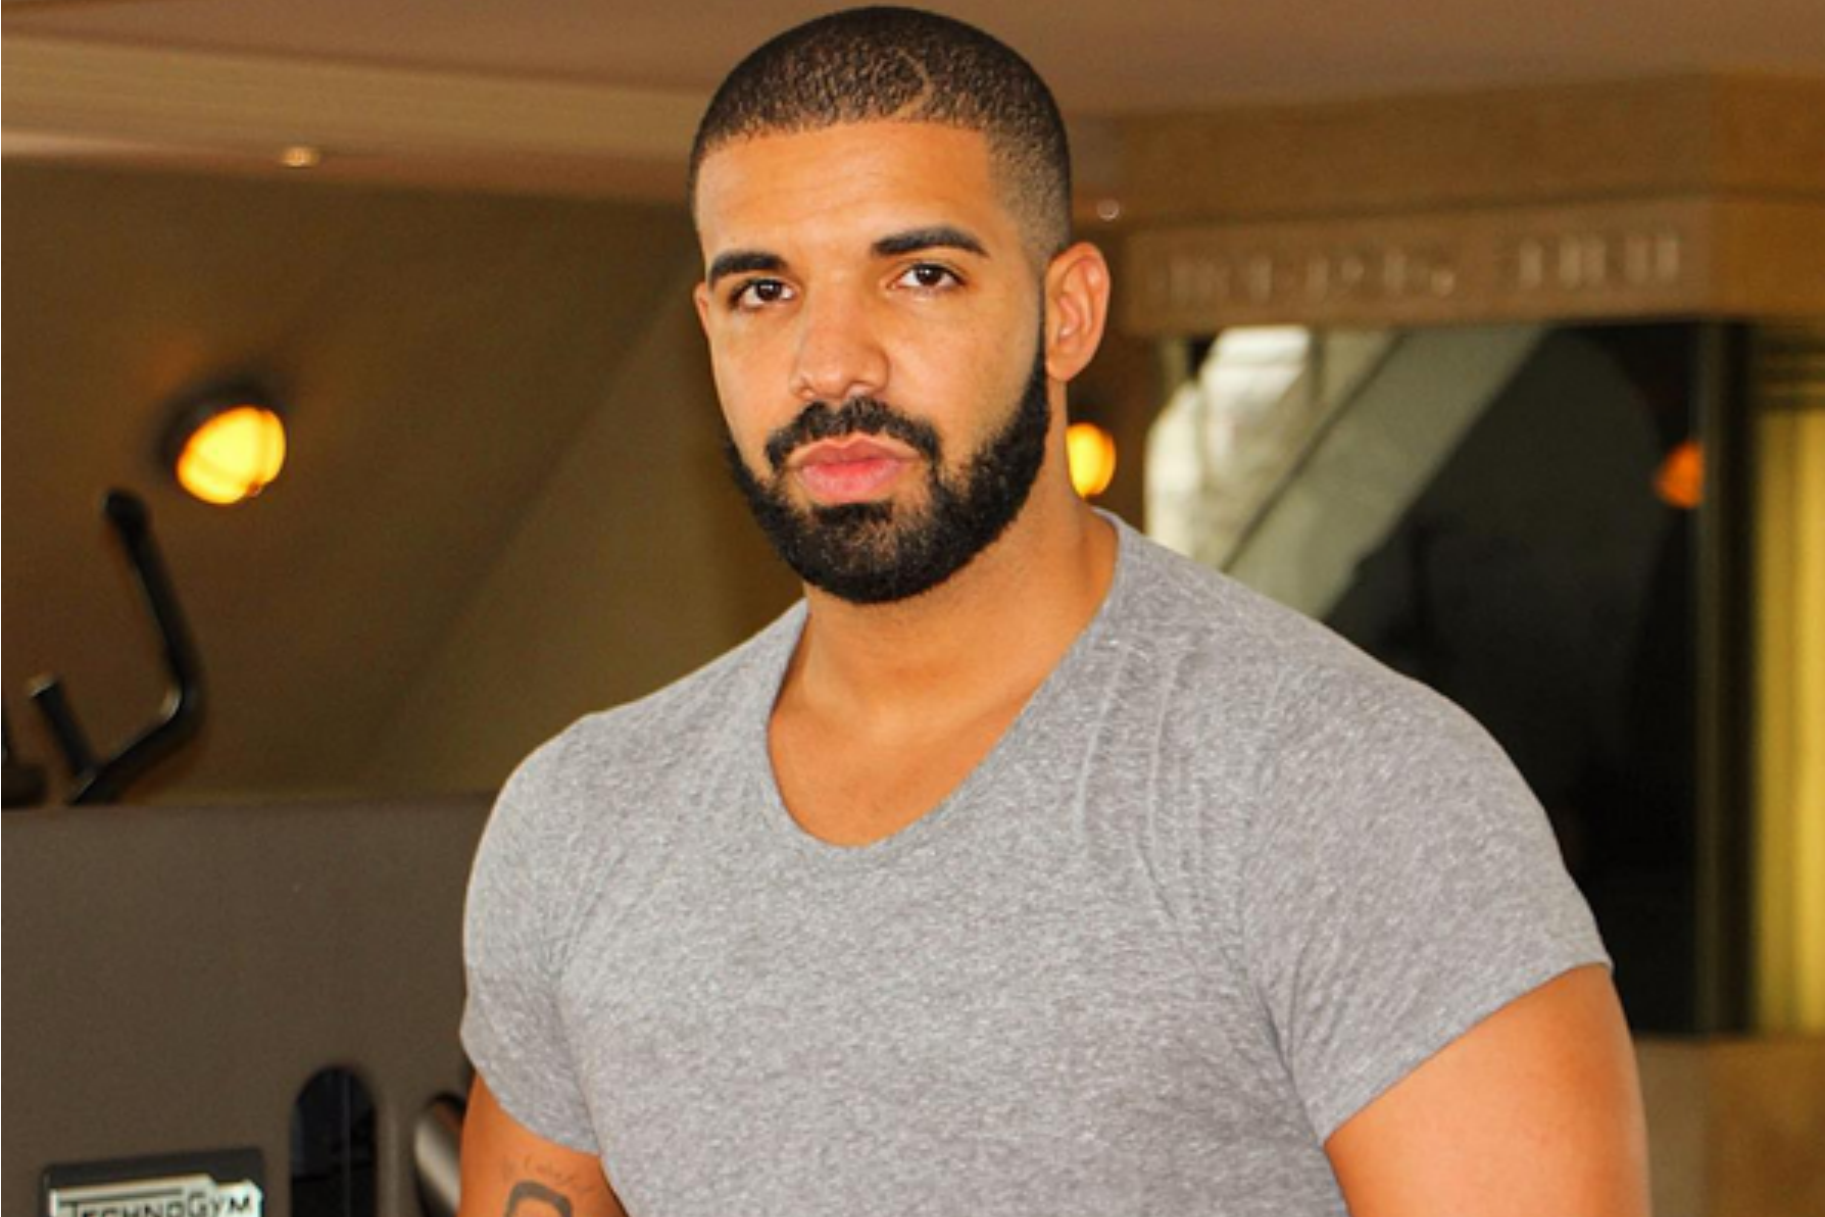 Look out drake 39 s new workout pics are thirst traps very for Thedrake